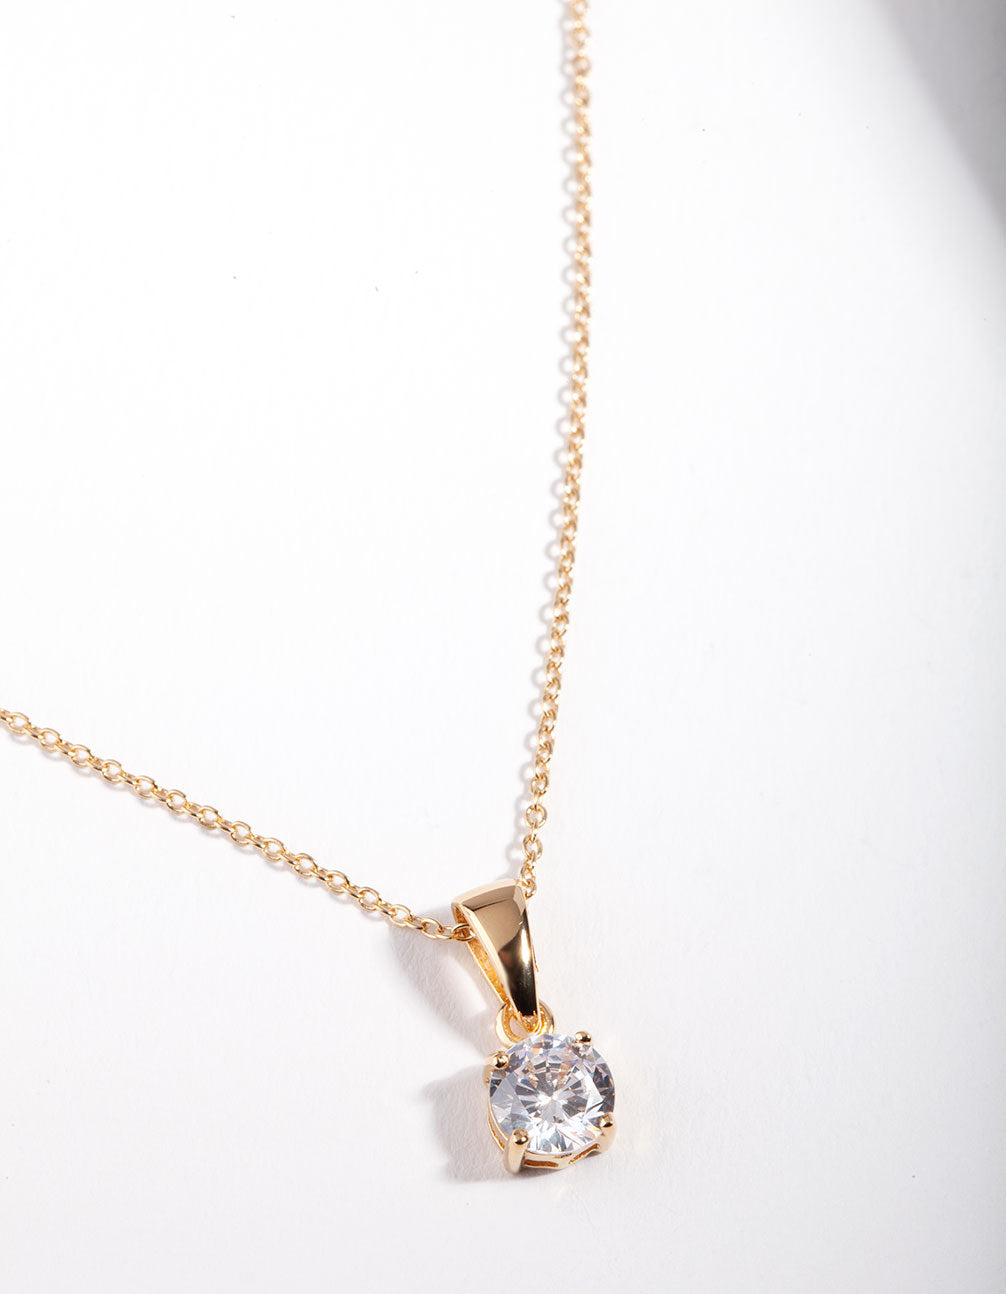 Gold Plated Sterling Silver 1 Carat Cubic Zirconia Necklace